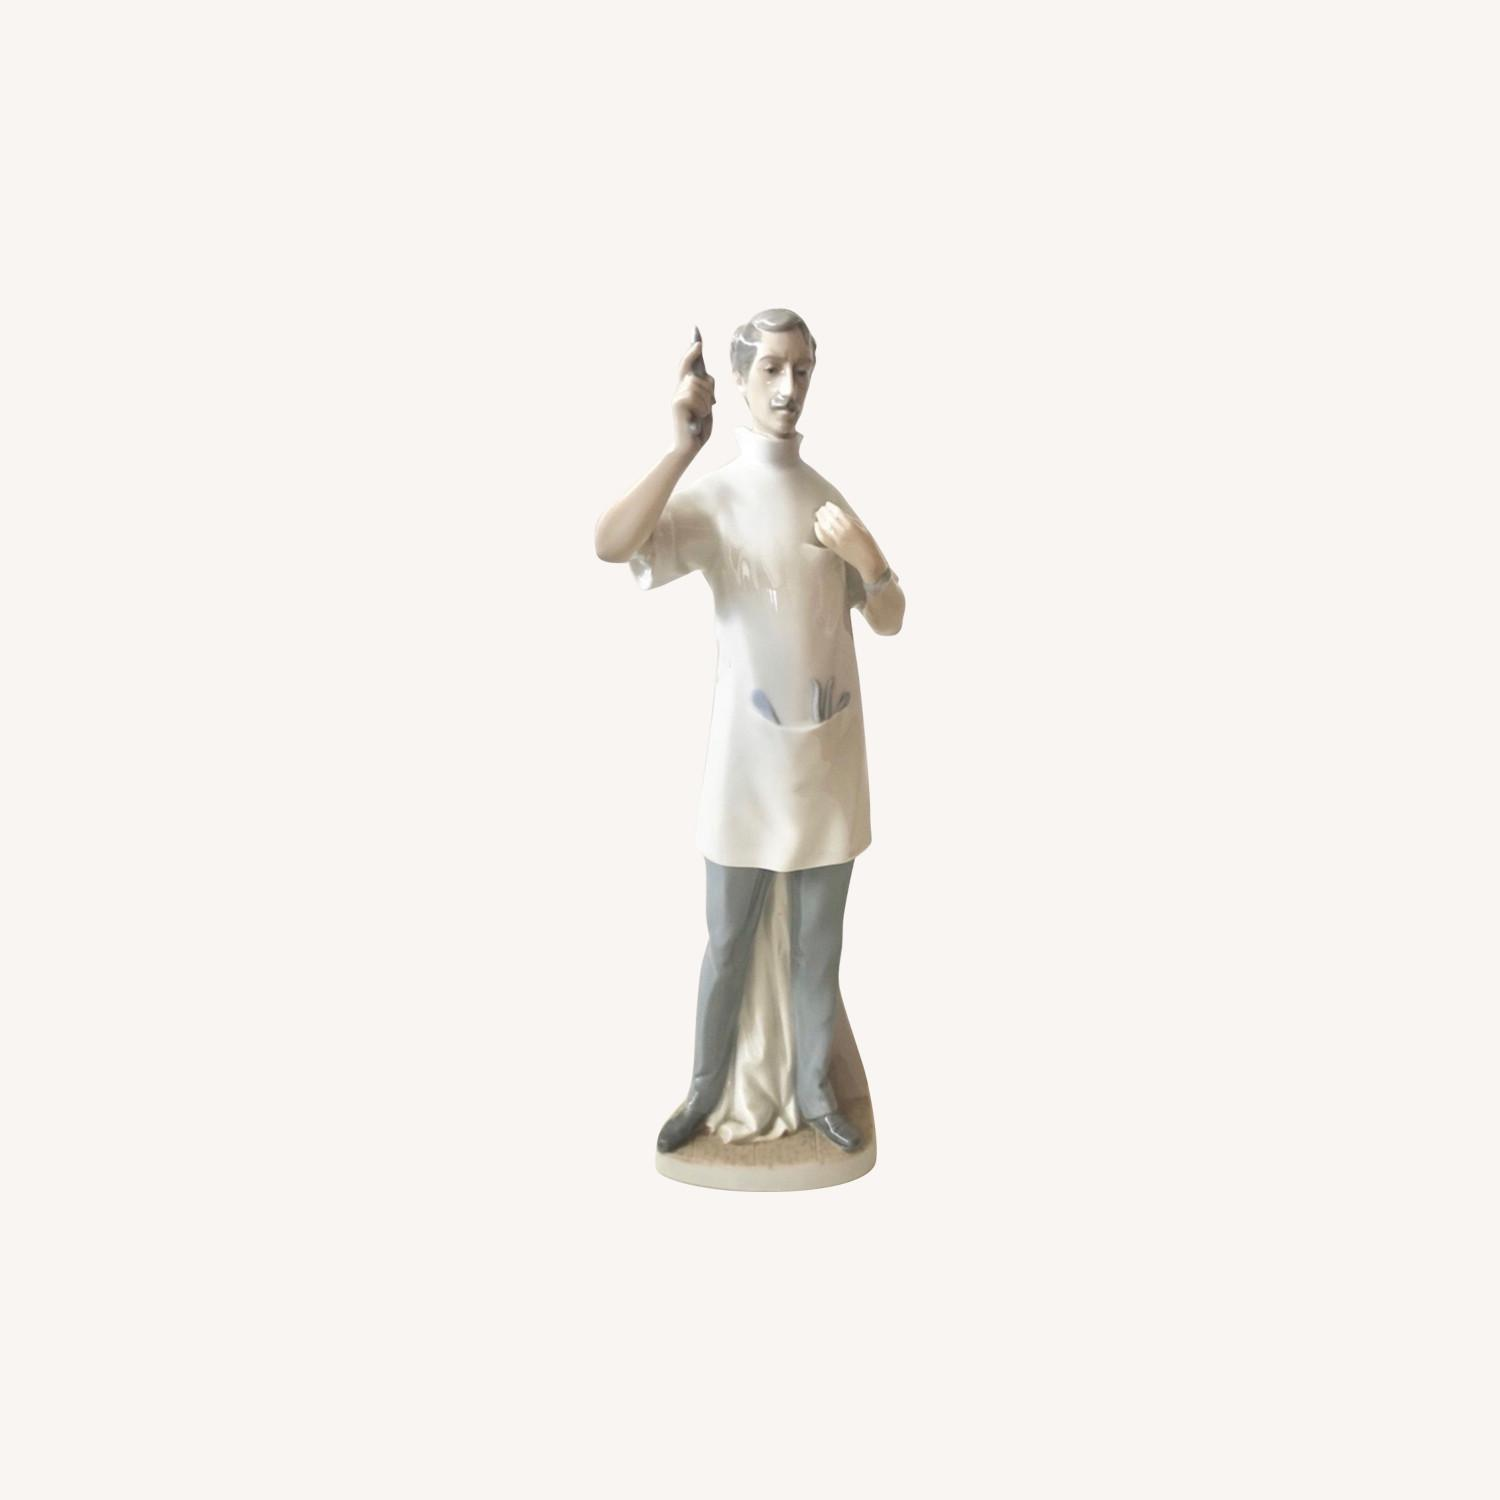 Lladro The Dentist Porcelain Figurine - image-0